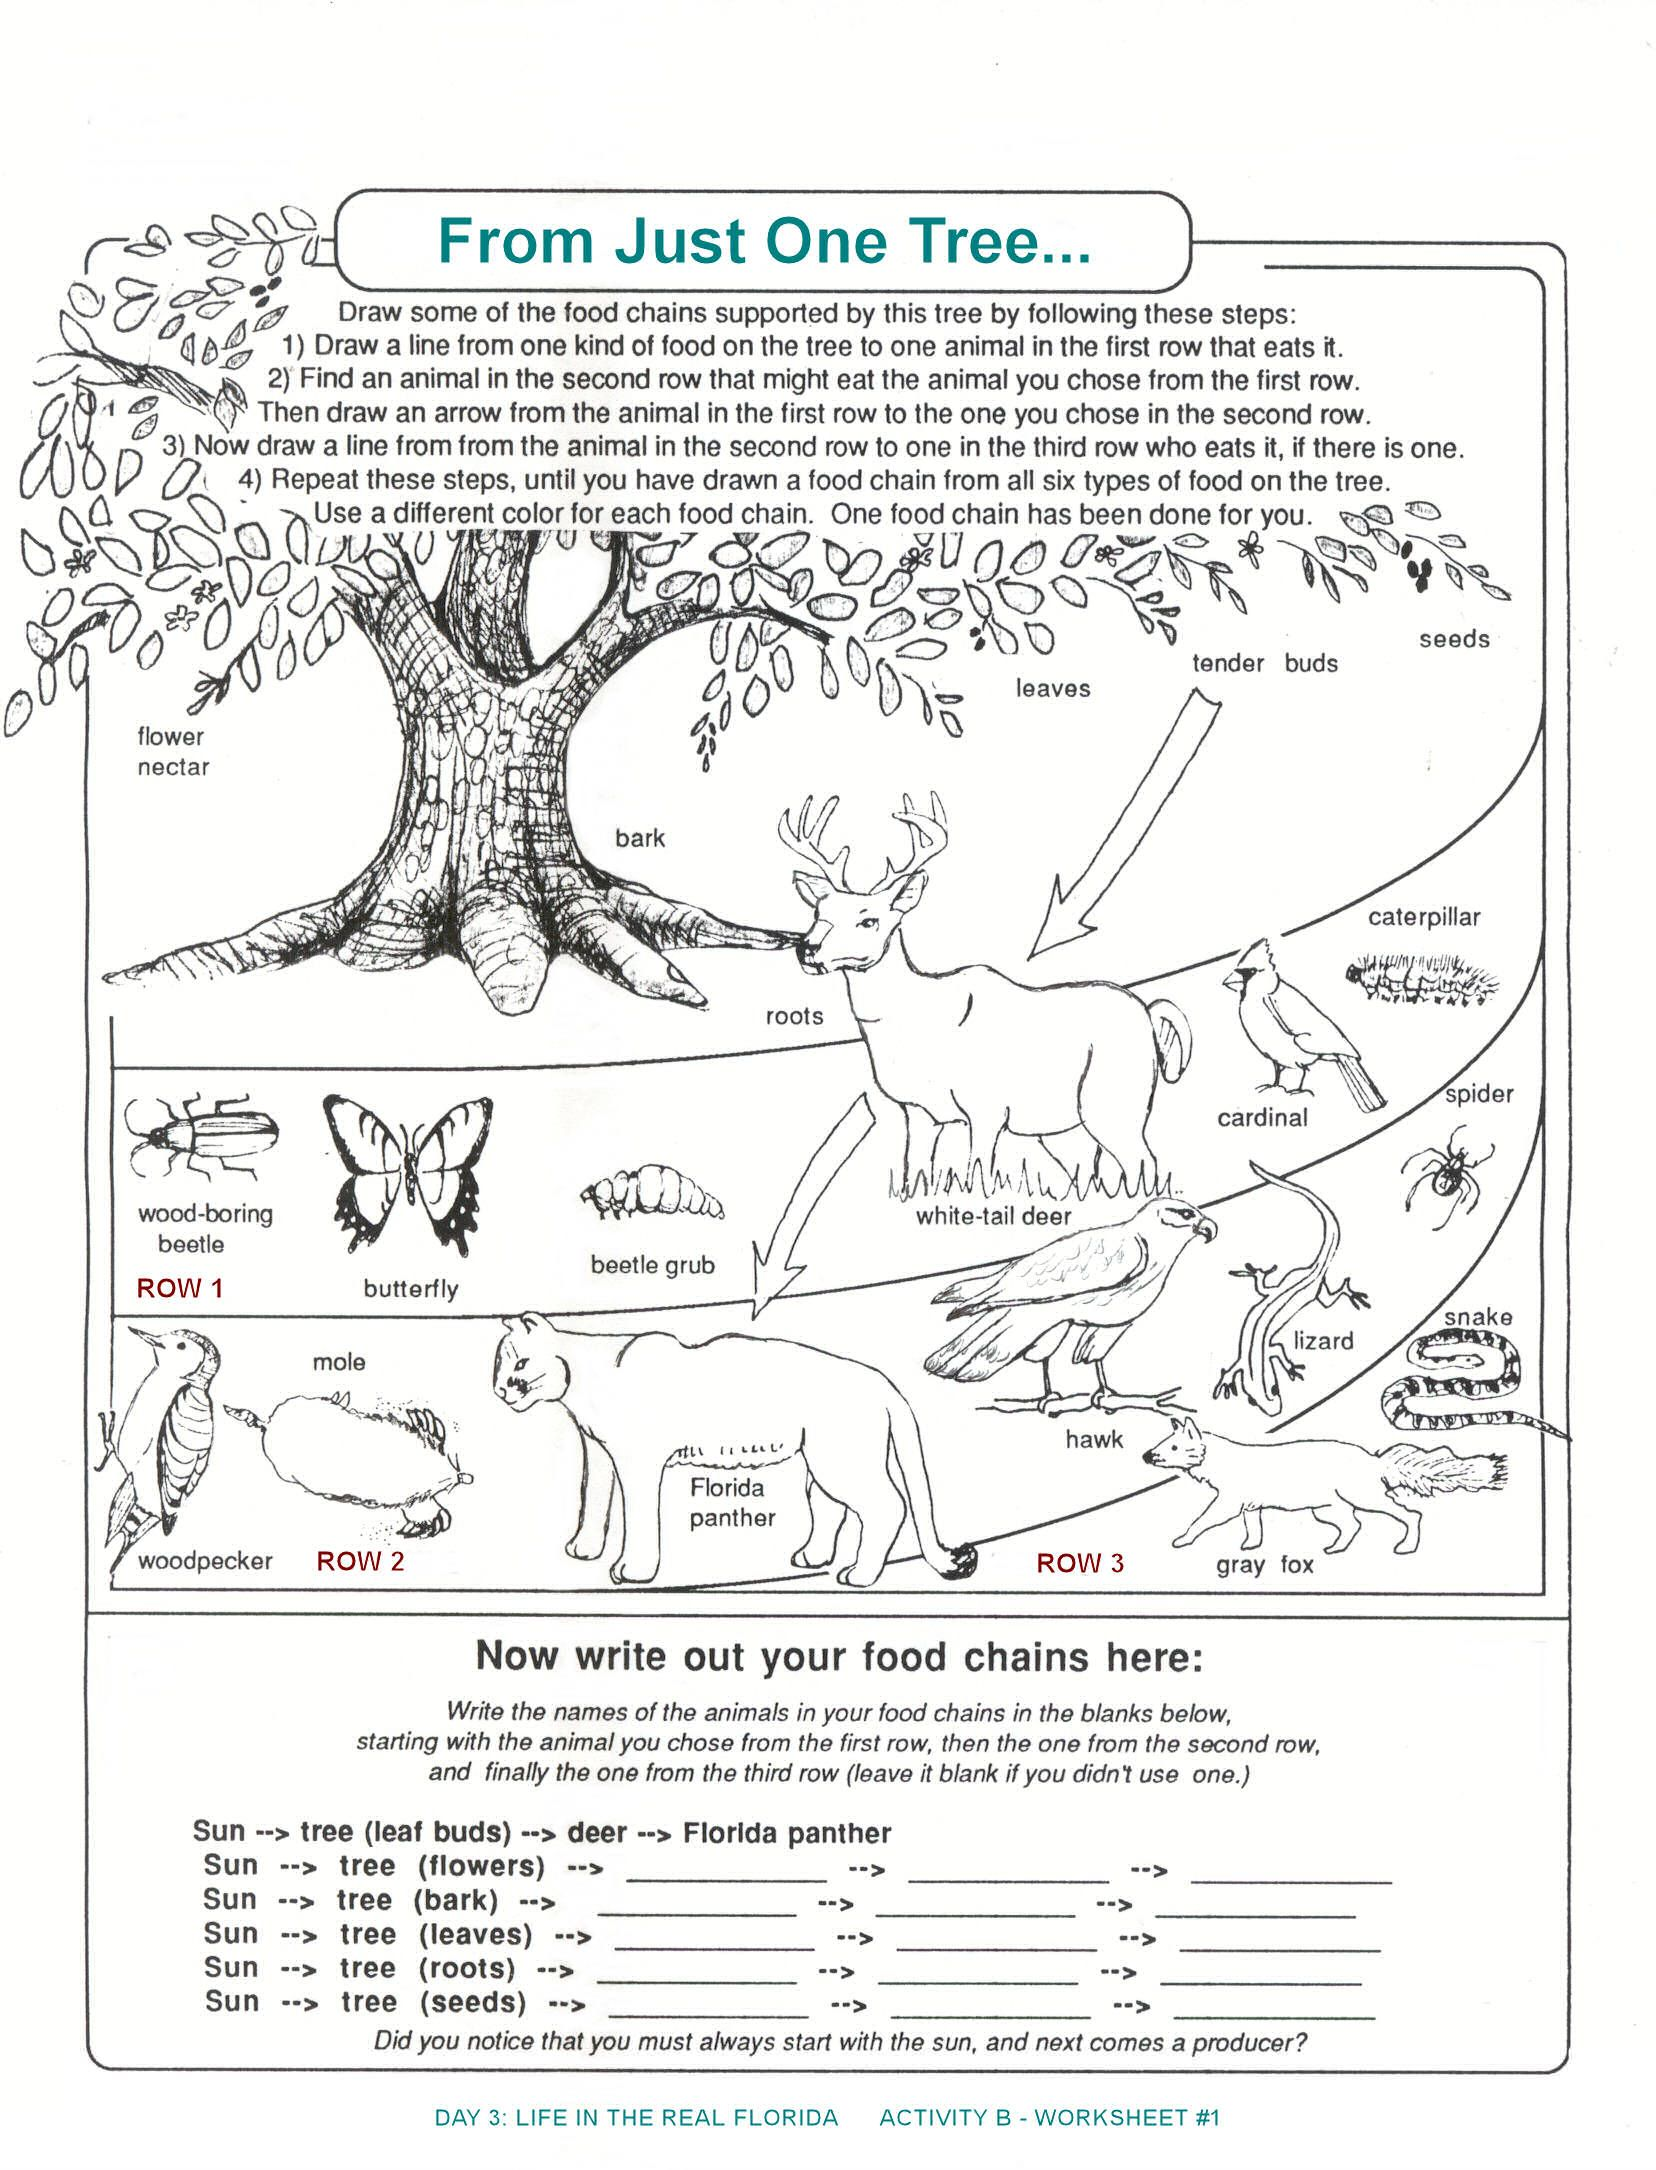 D Ffbe E A C Aab E A Free Printable Worksheets Fungi also Run On Sentences And Sentence Fragment Pack Worksheets Worksheet Pdf With Answer Key further F B Daa D C F D D additionally D Ffbe E A C Aab E A Free Printable Worksheets Fungi together with Ecology Worksheet. on symbiosis worksheets for high school